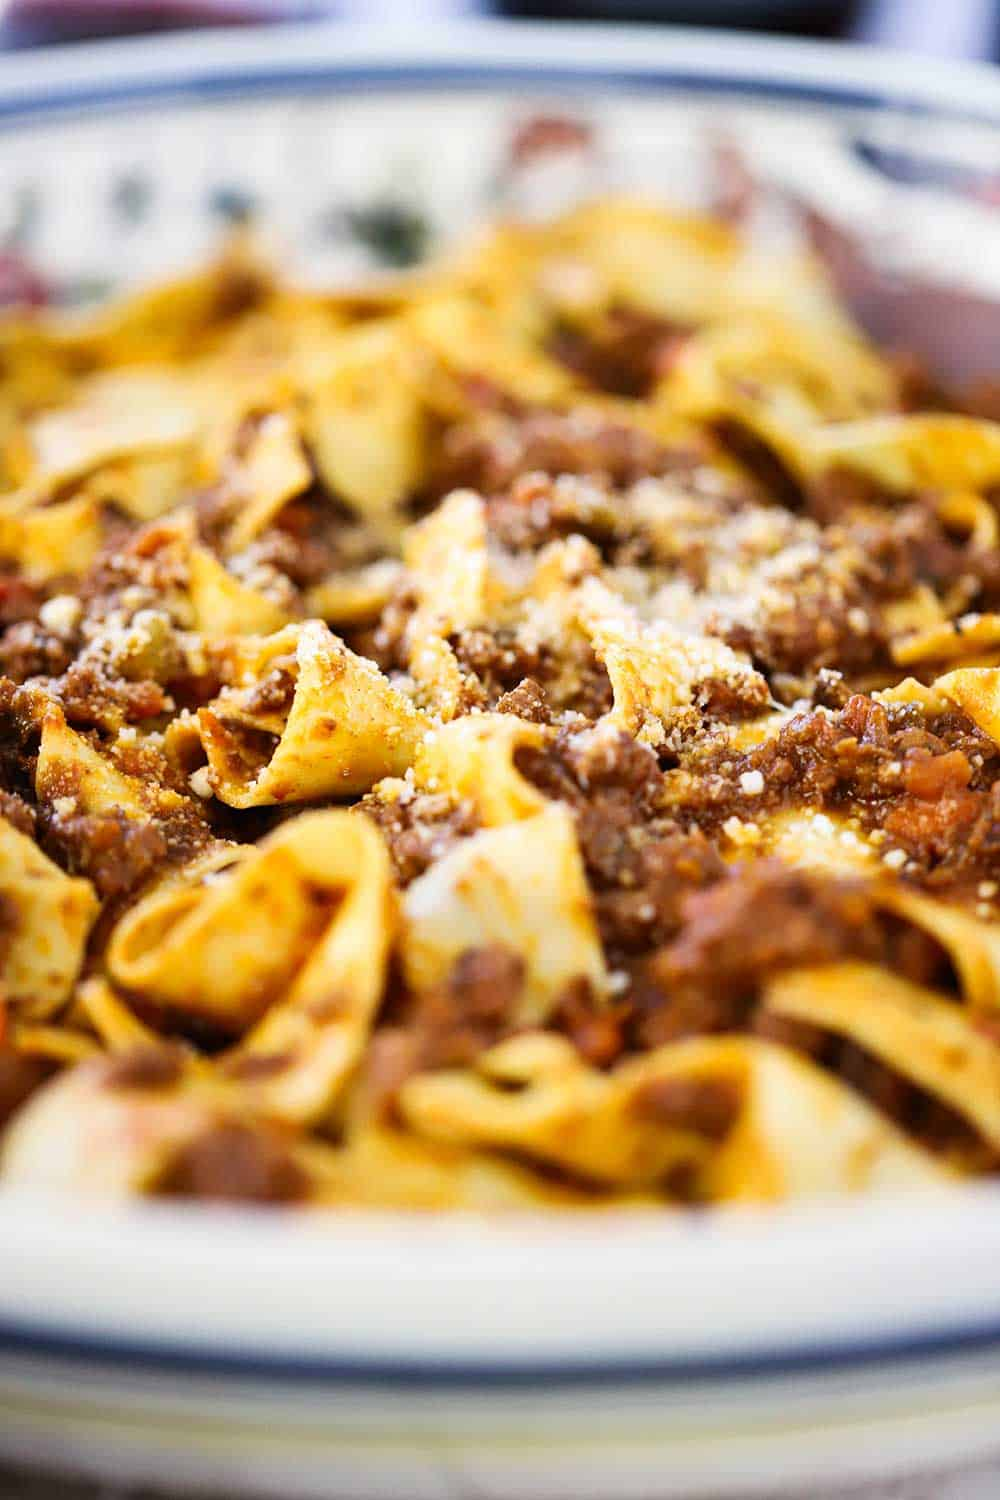 A close-up view of a large Italian pasta bowl filled with homemade pappardelle bolognese.